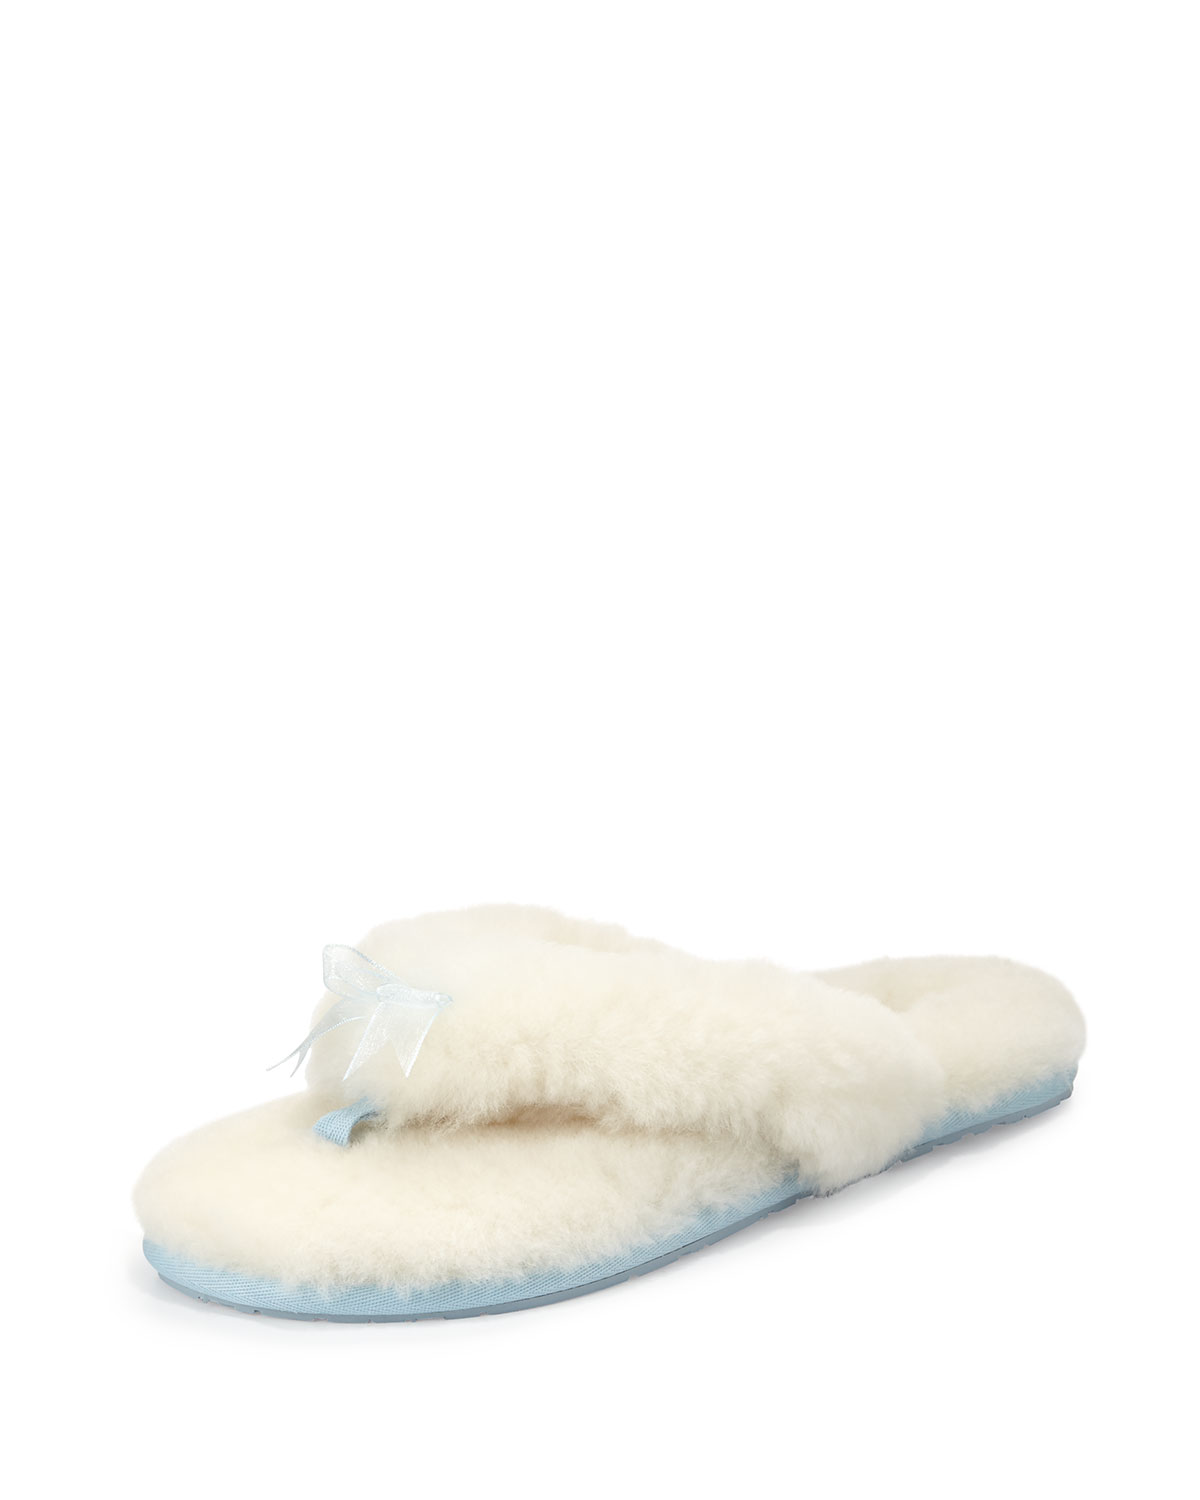 Fluff Flip Flop Bridal Slipper, White/Baby Blue